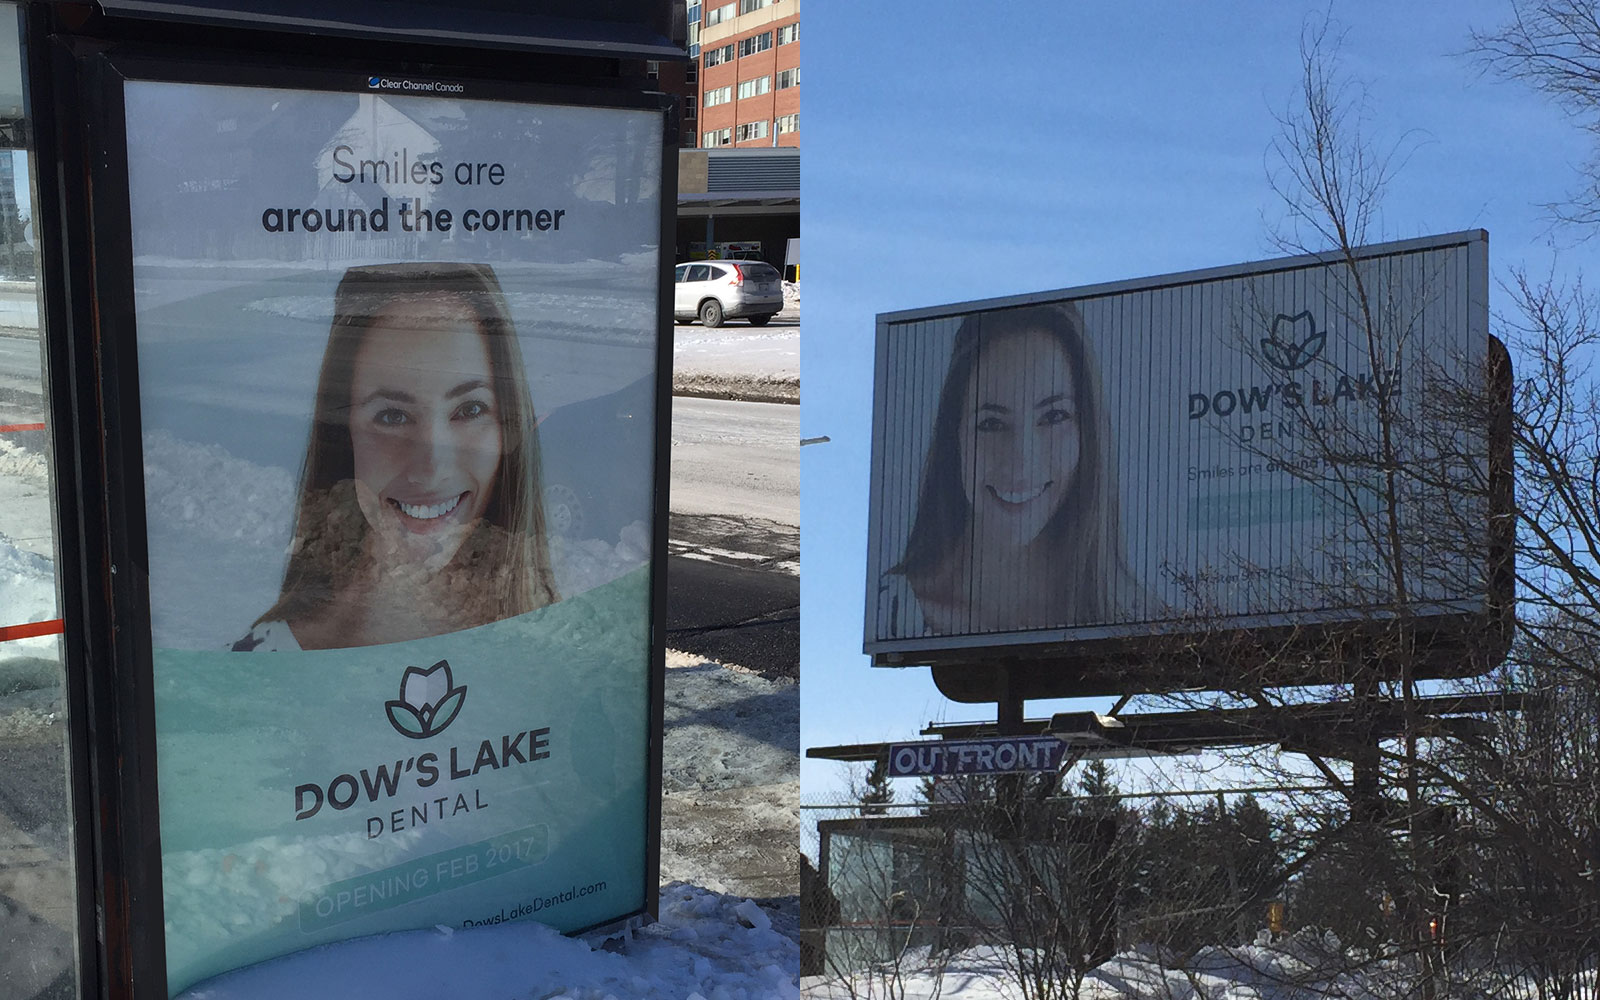 Dow's Lake Dental - Bus Stop and Billboard